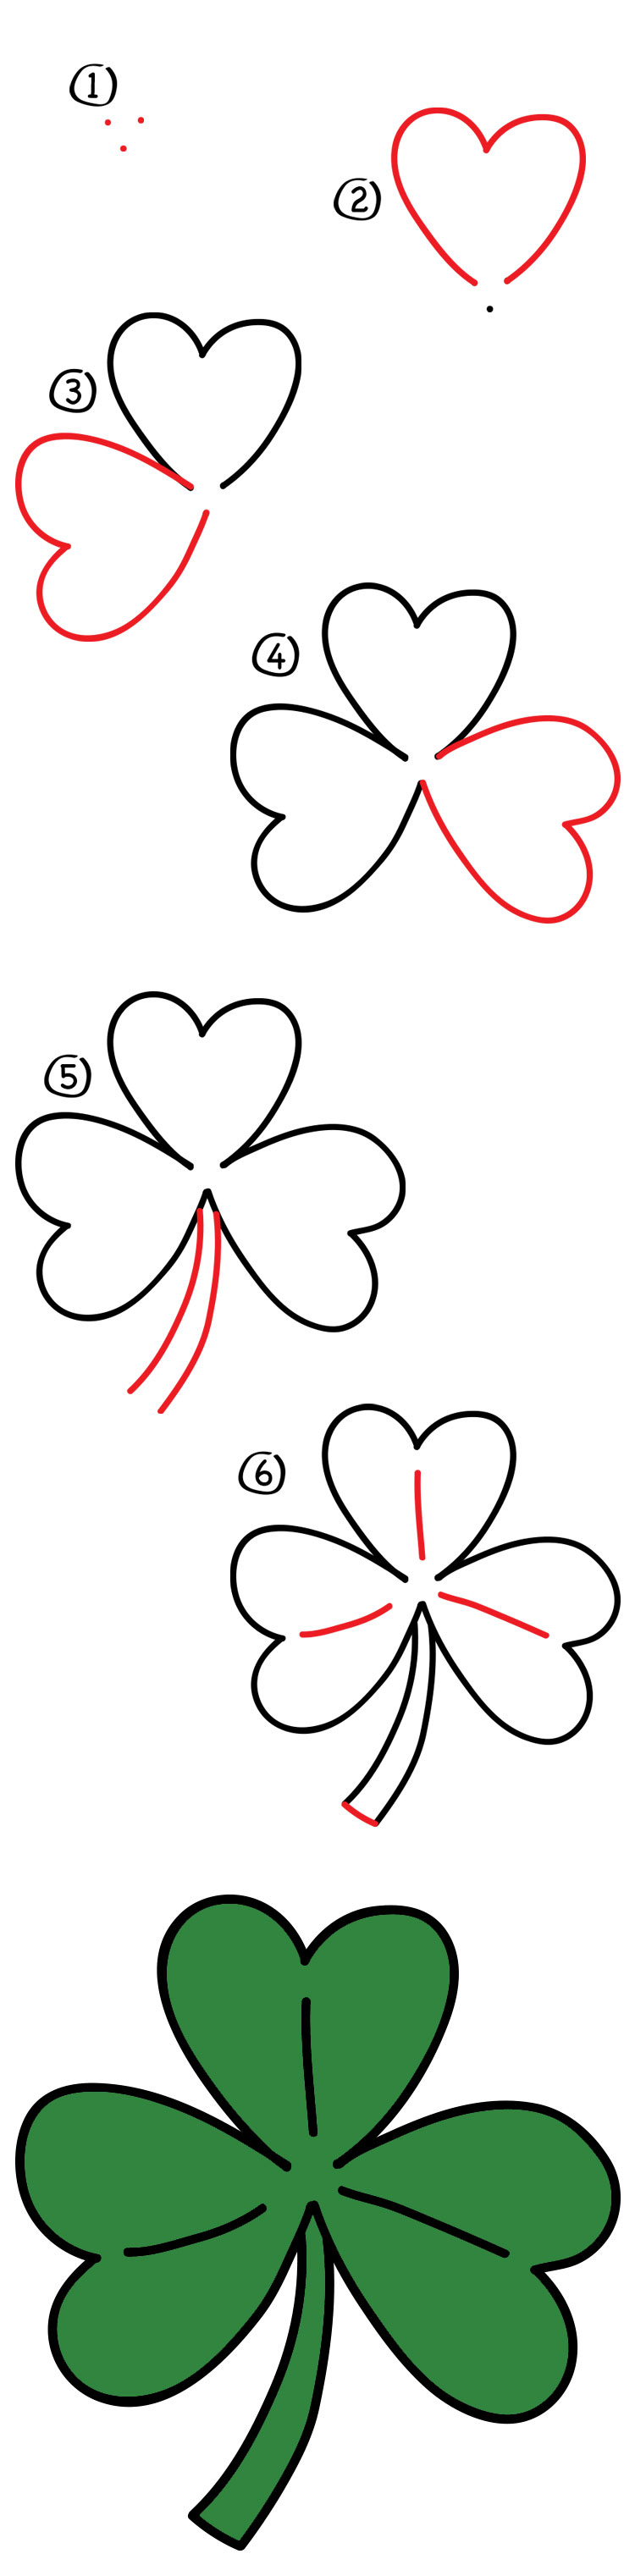 How To Draw A Shamrock Art For Kids Hub